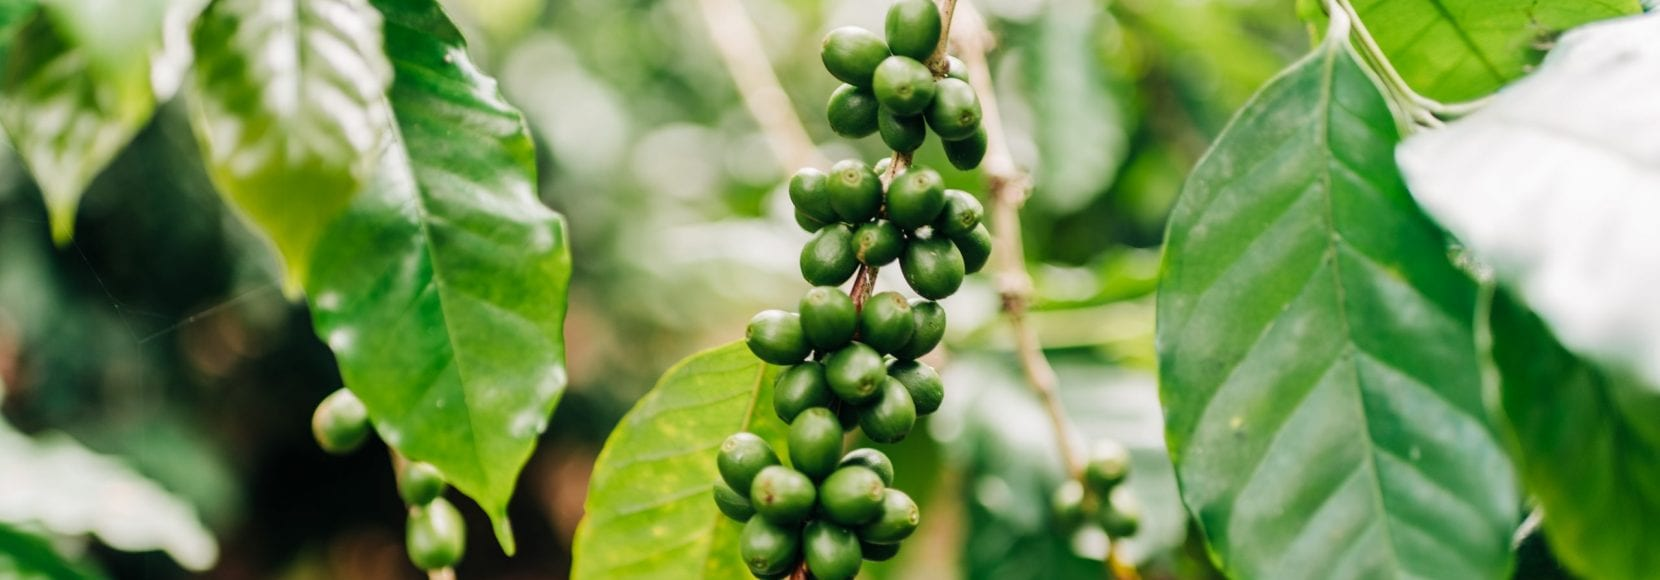 Coffee beans on the vine in Ethiopia